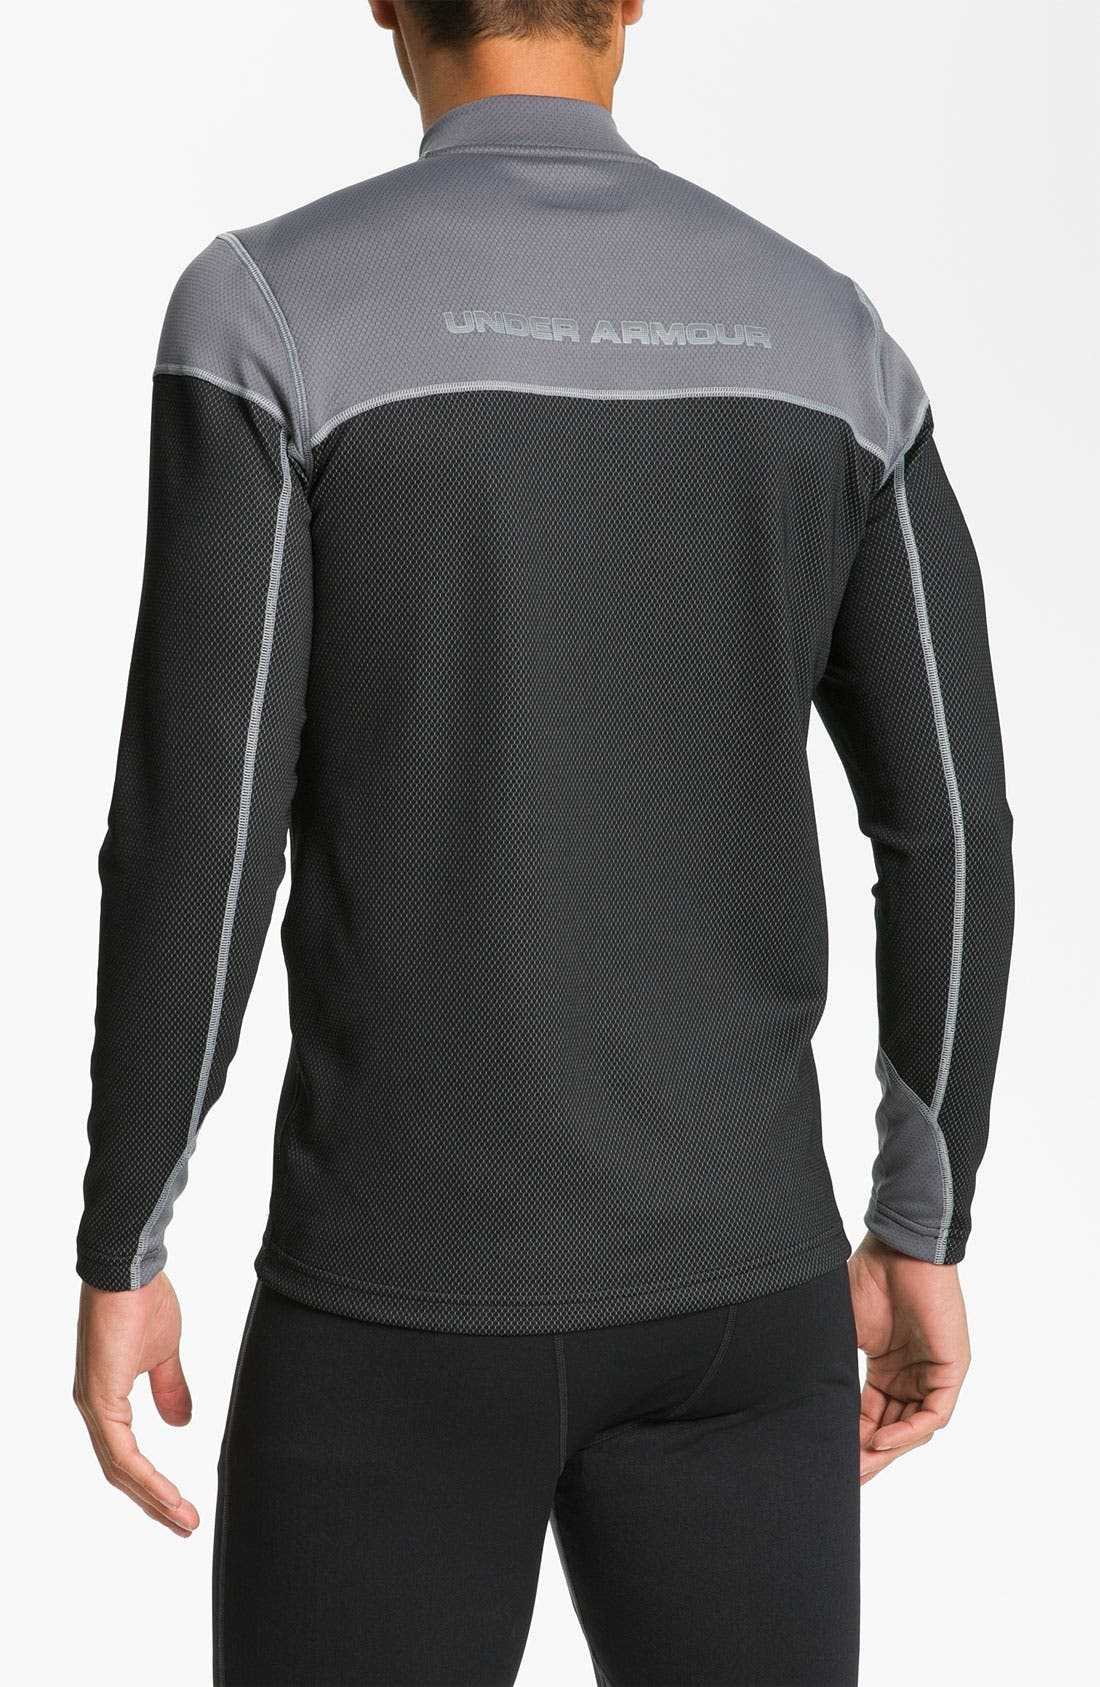 Alternate Image 2  - Under Armour 'CG Thermo' Fitted Quarter Zip Running Top